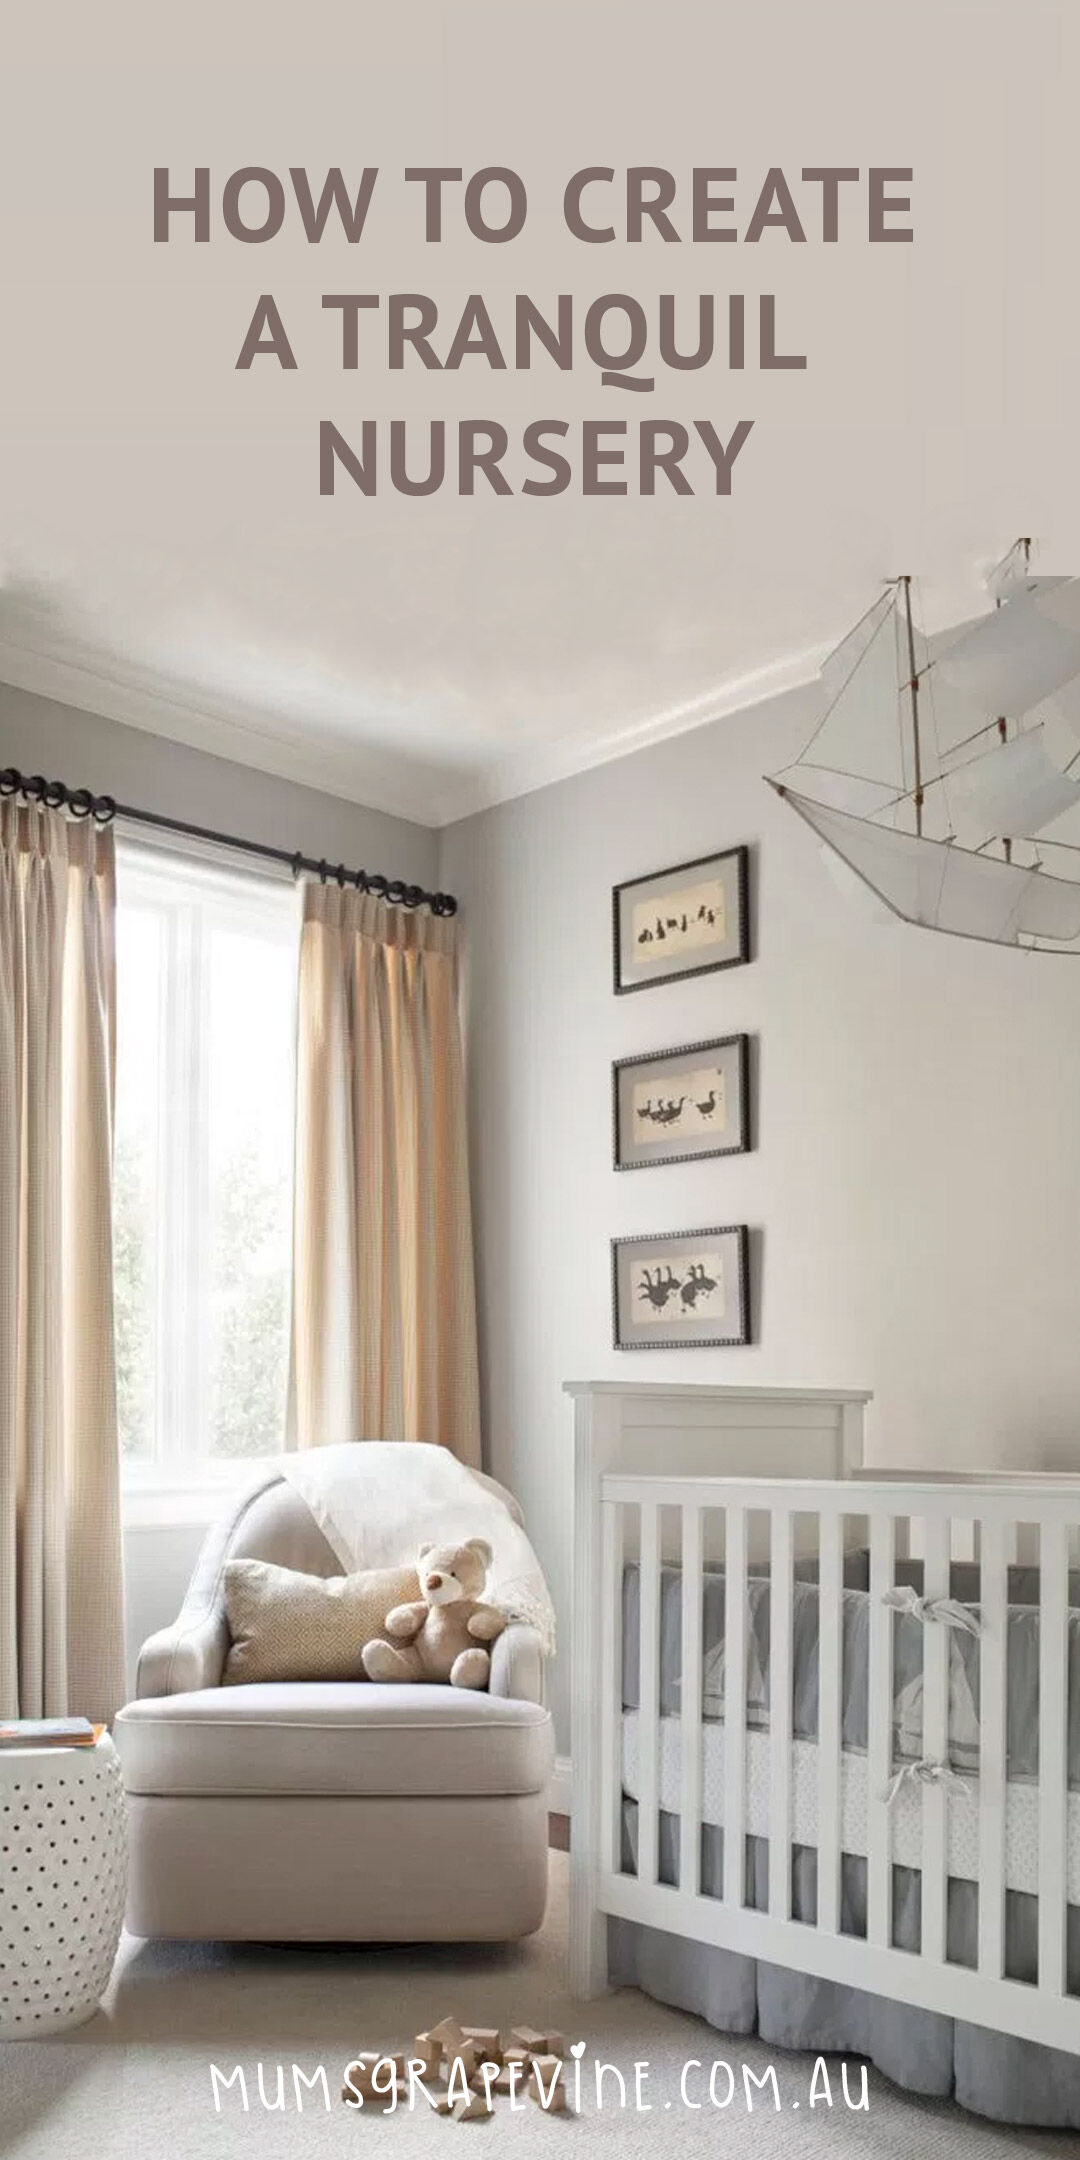 How to create a tranquil baby nursery